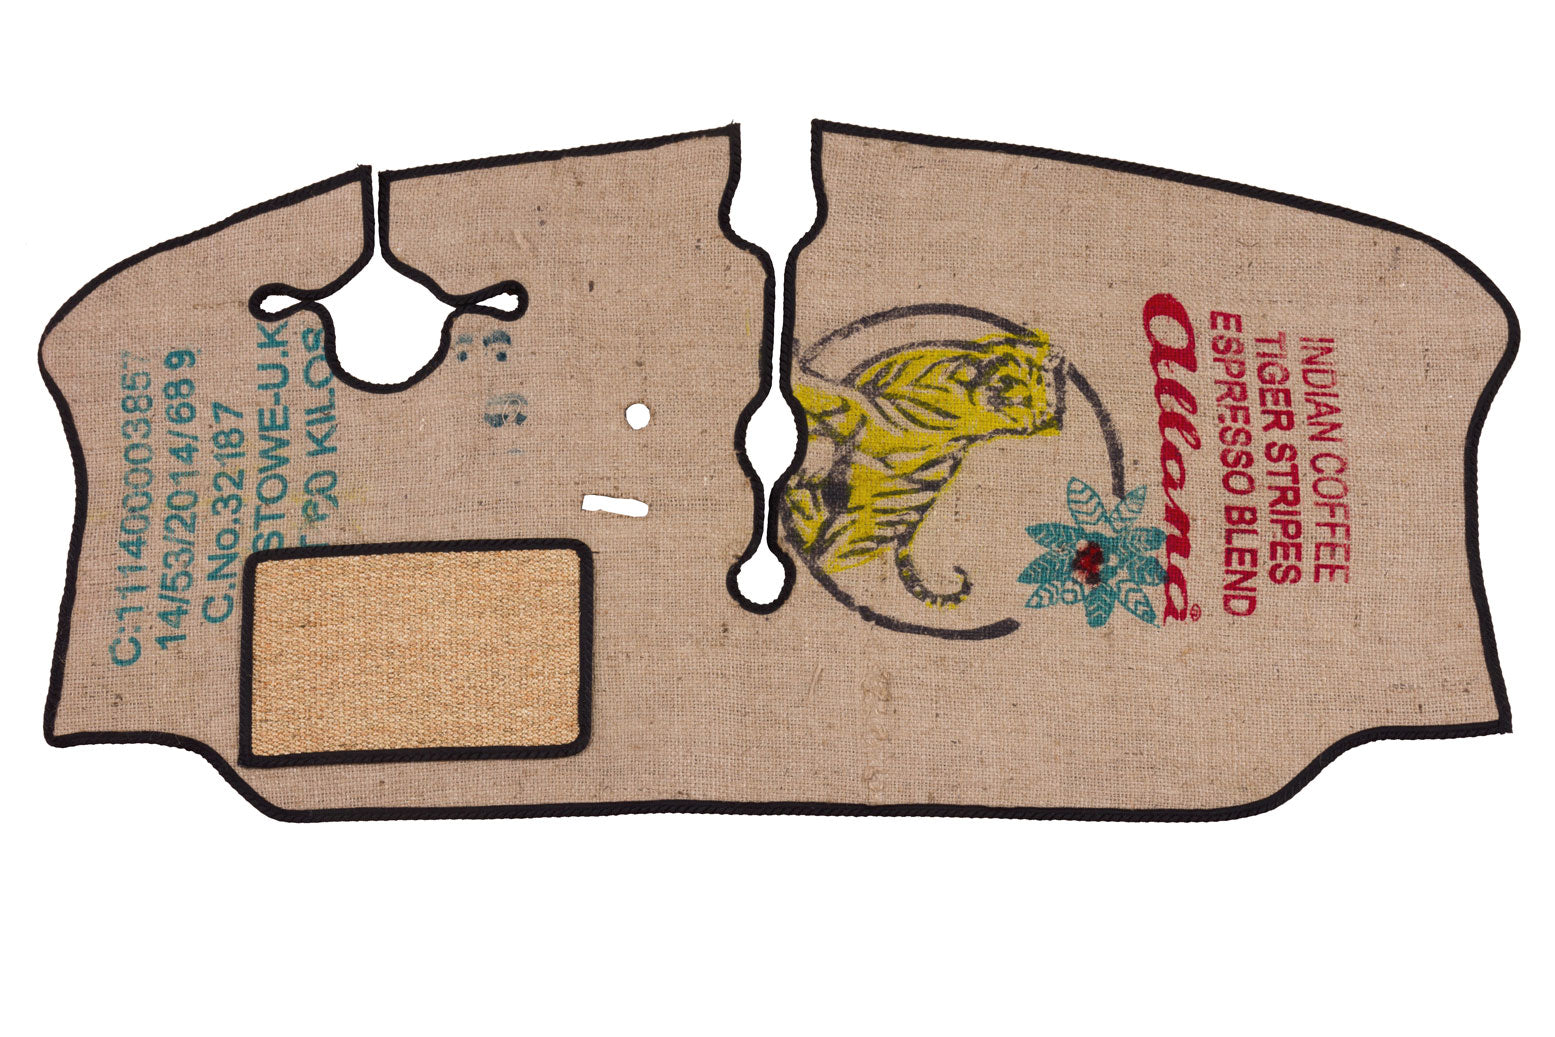 Late VW bay window camper van cab mat in coffee sack